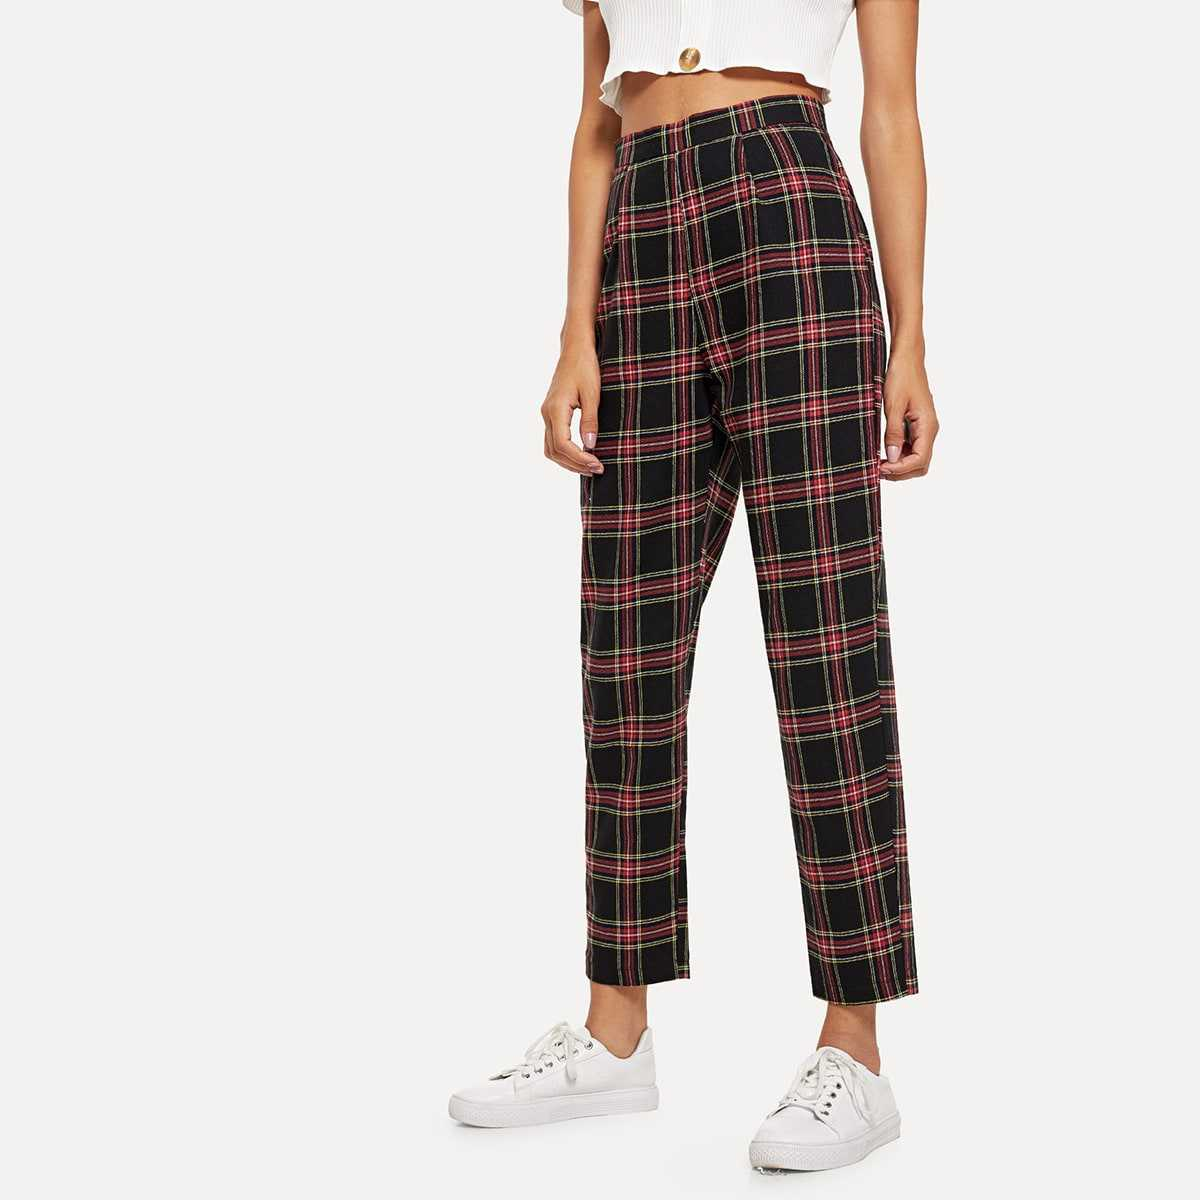 Plaid Zip Side Pants in Multicolor by ROMWE on GOOFASH